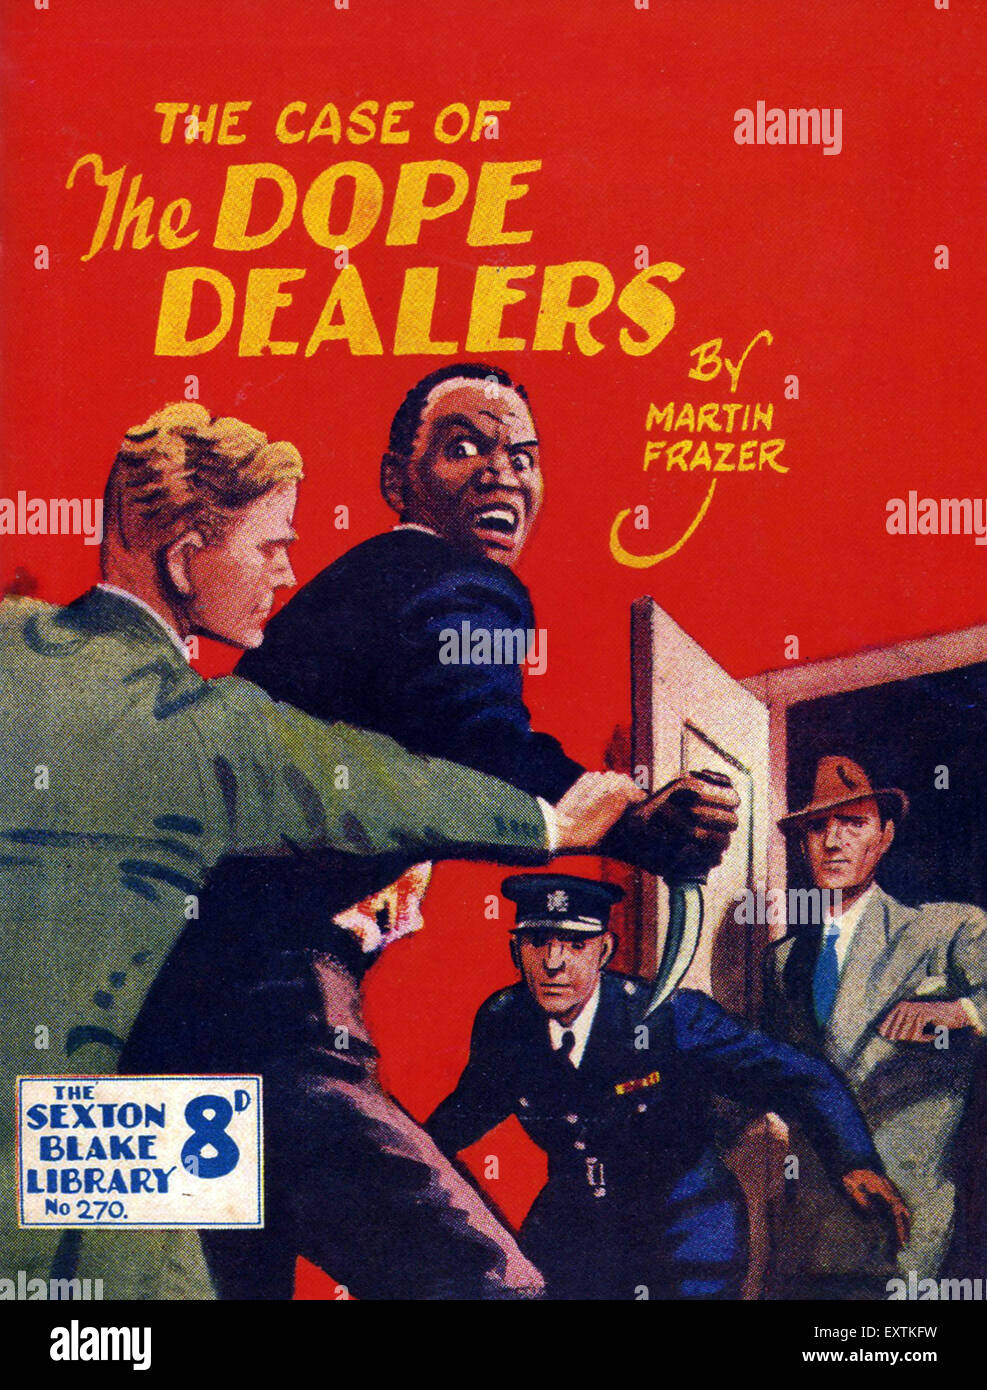 1950s UK The Case of the Dop Dealers Book Cover - Stock Image